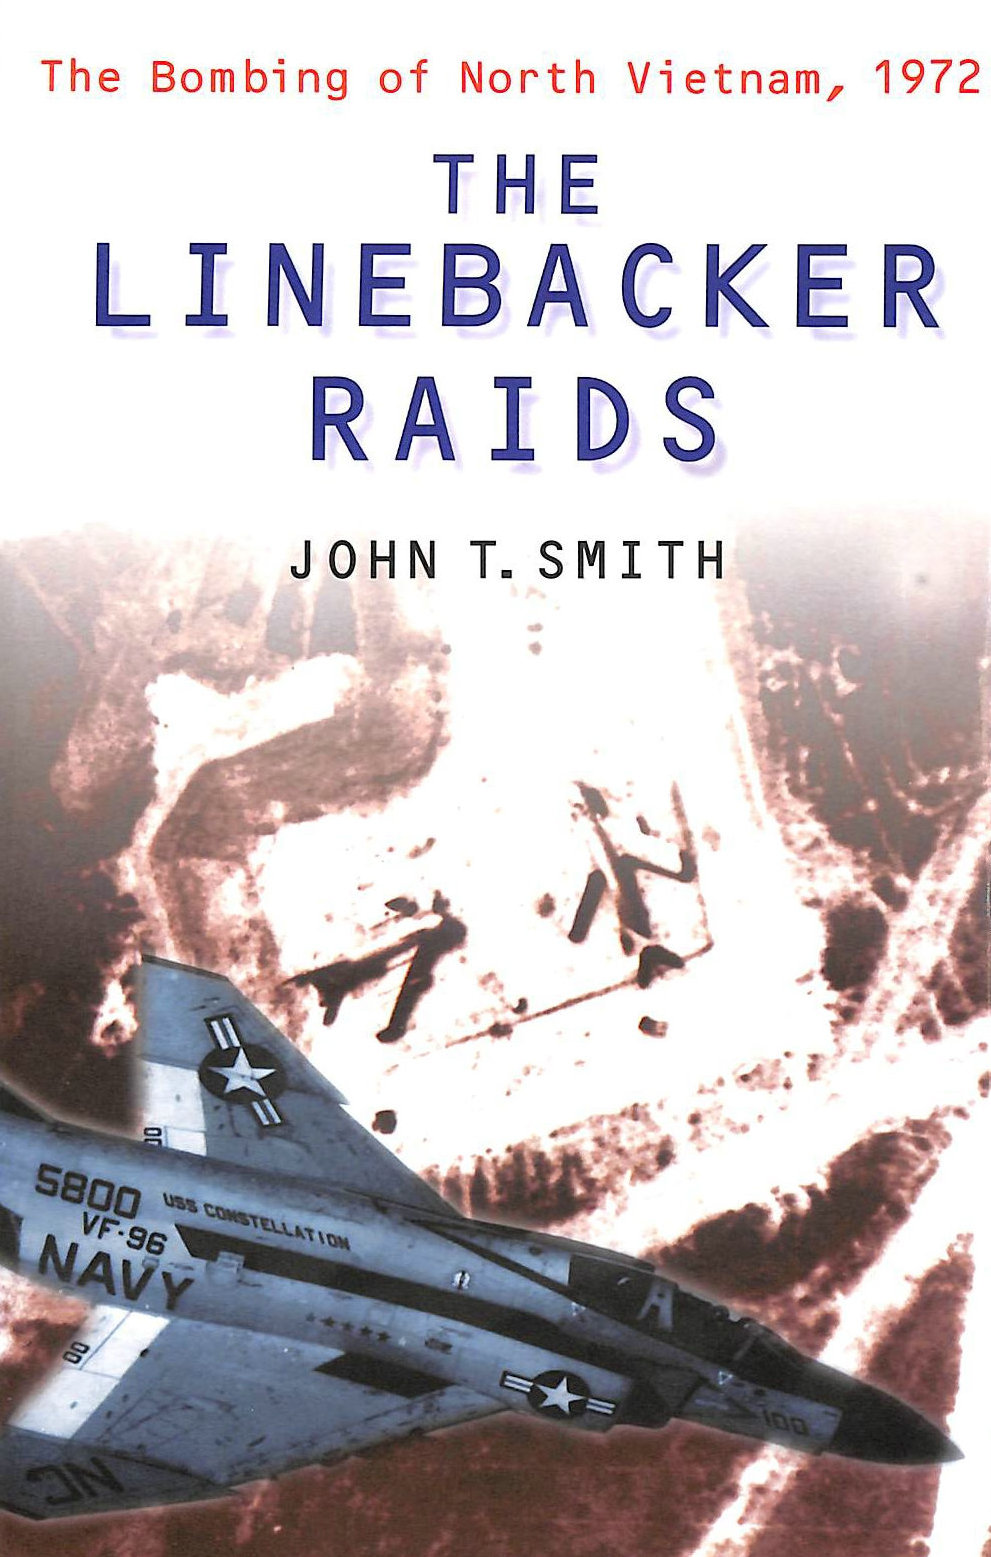 Image for The Linebacker Raids: The Bombing of North Vietnam, 1972